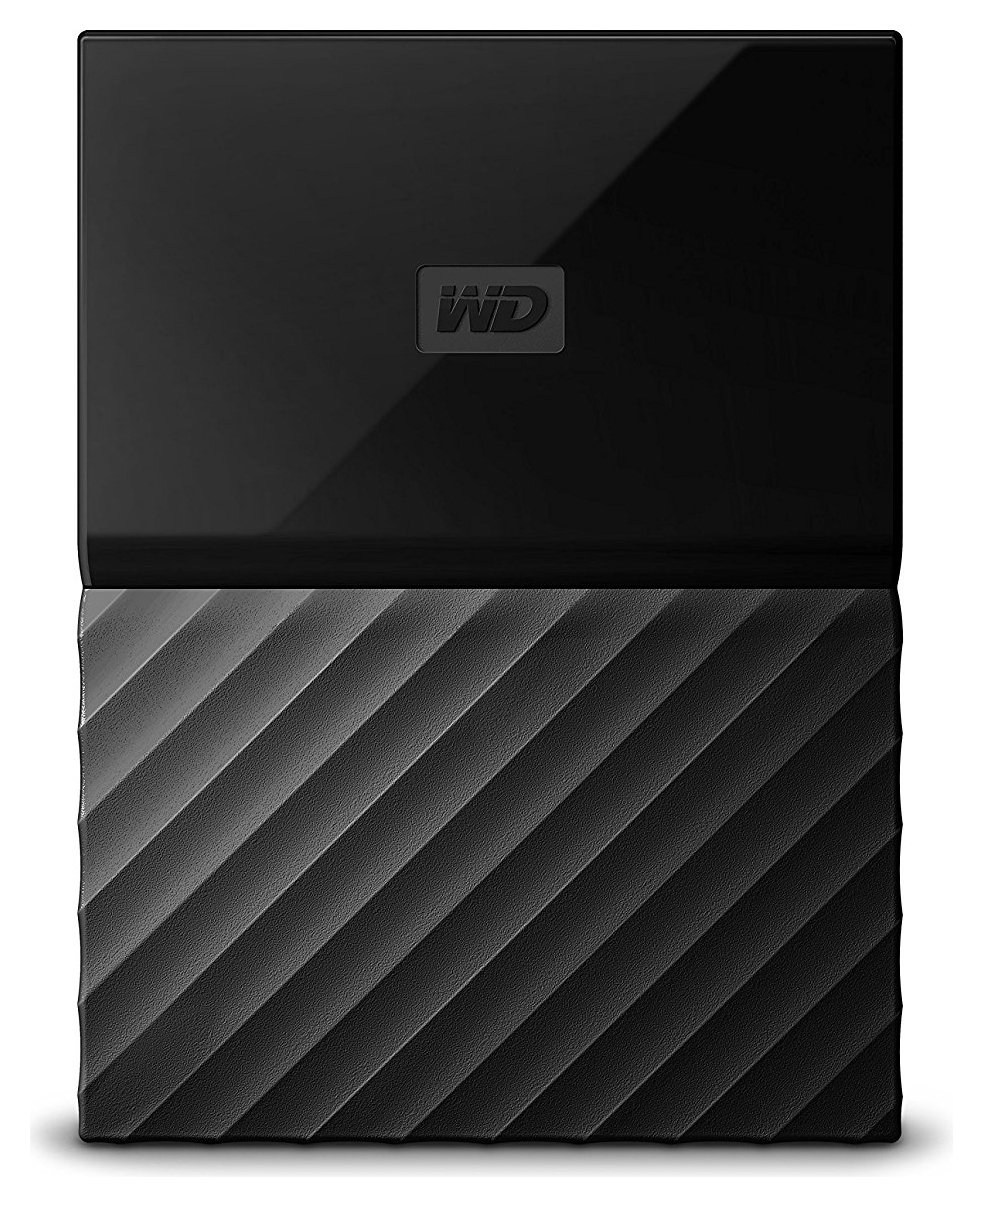 WD My Passport 1TB Portable Hard Drive - Black